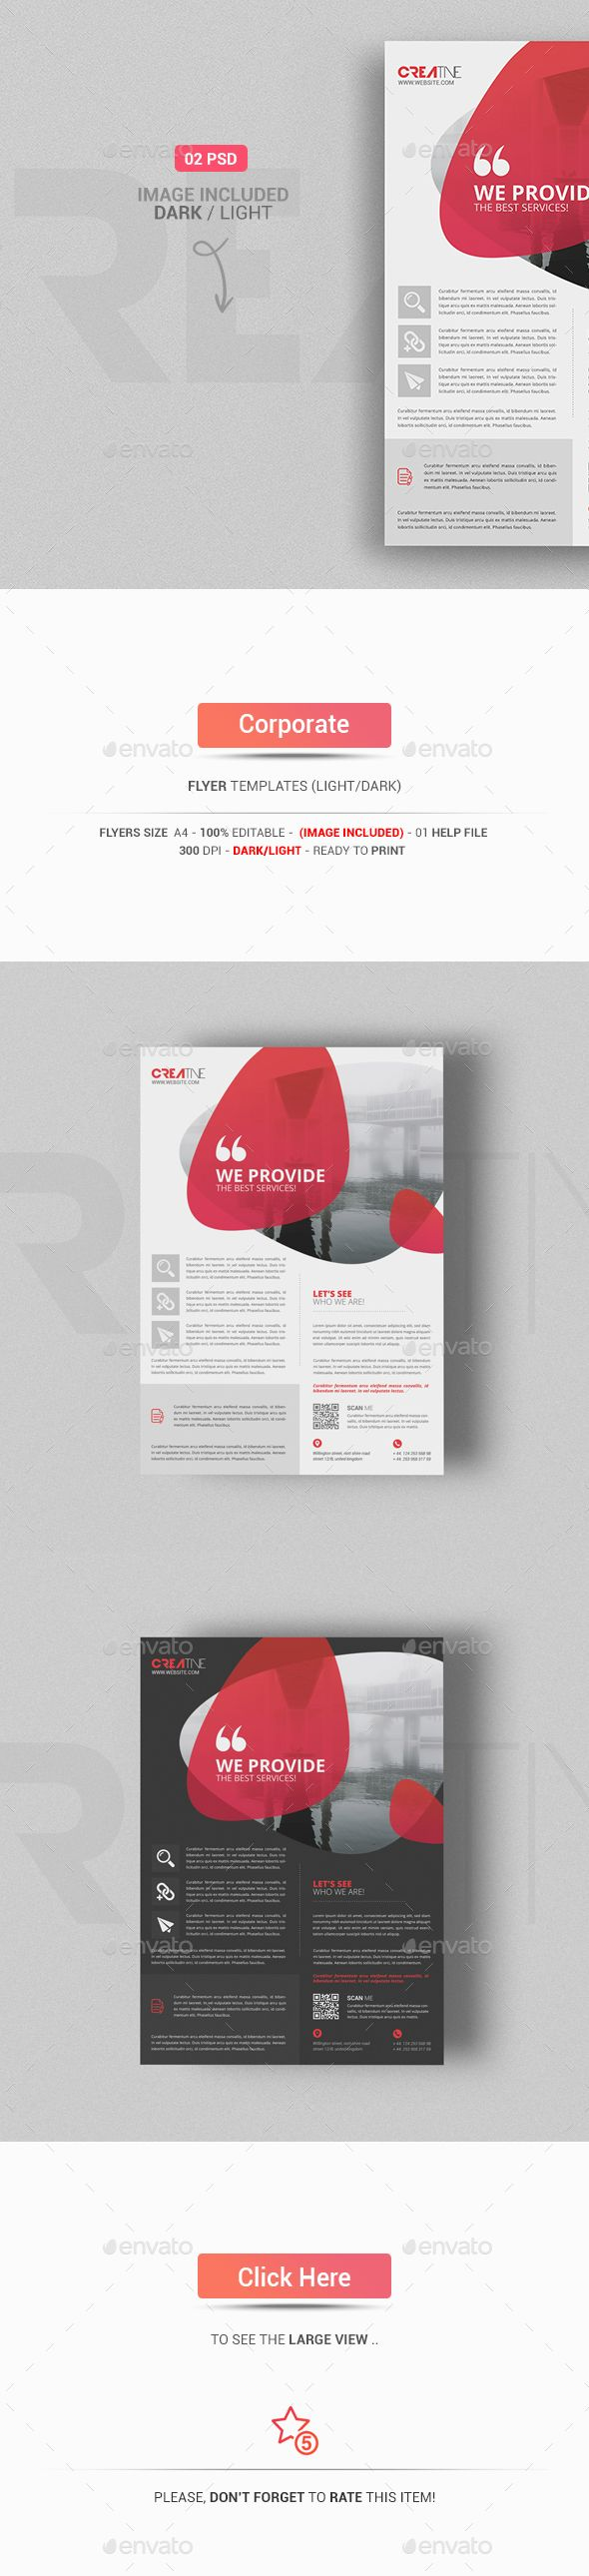 Corporate Flyer PSD Template • Download ➝ https://graphicriver.net ...